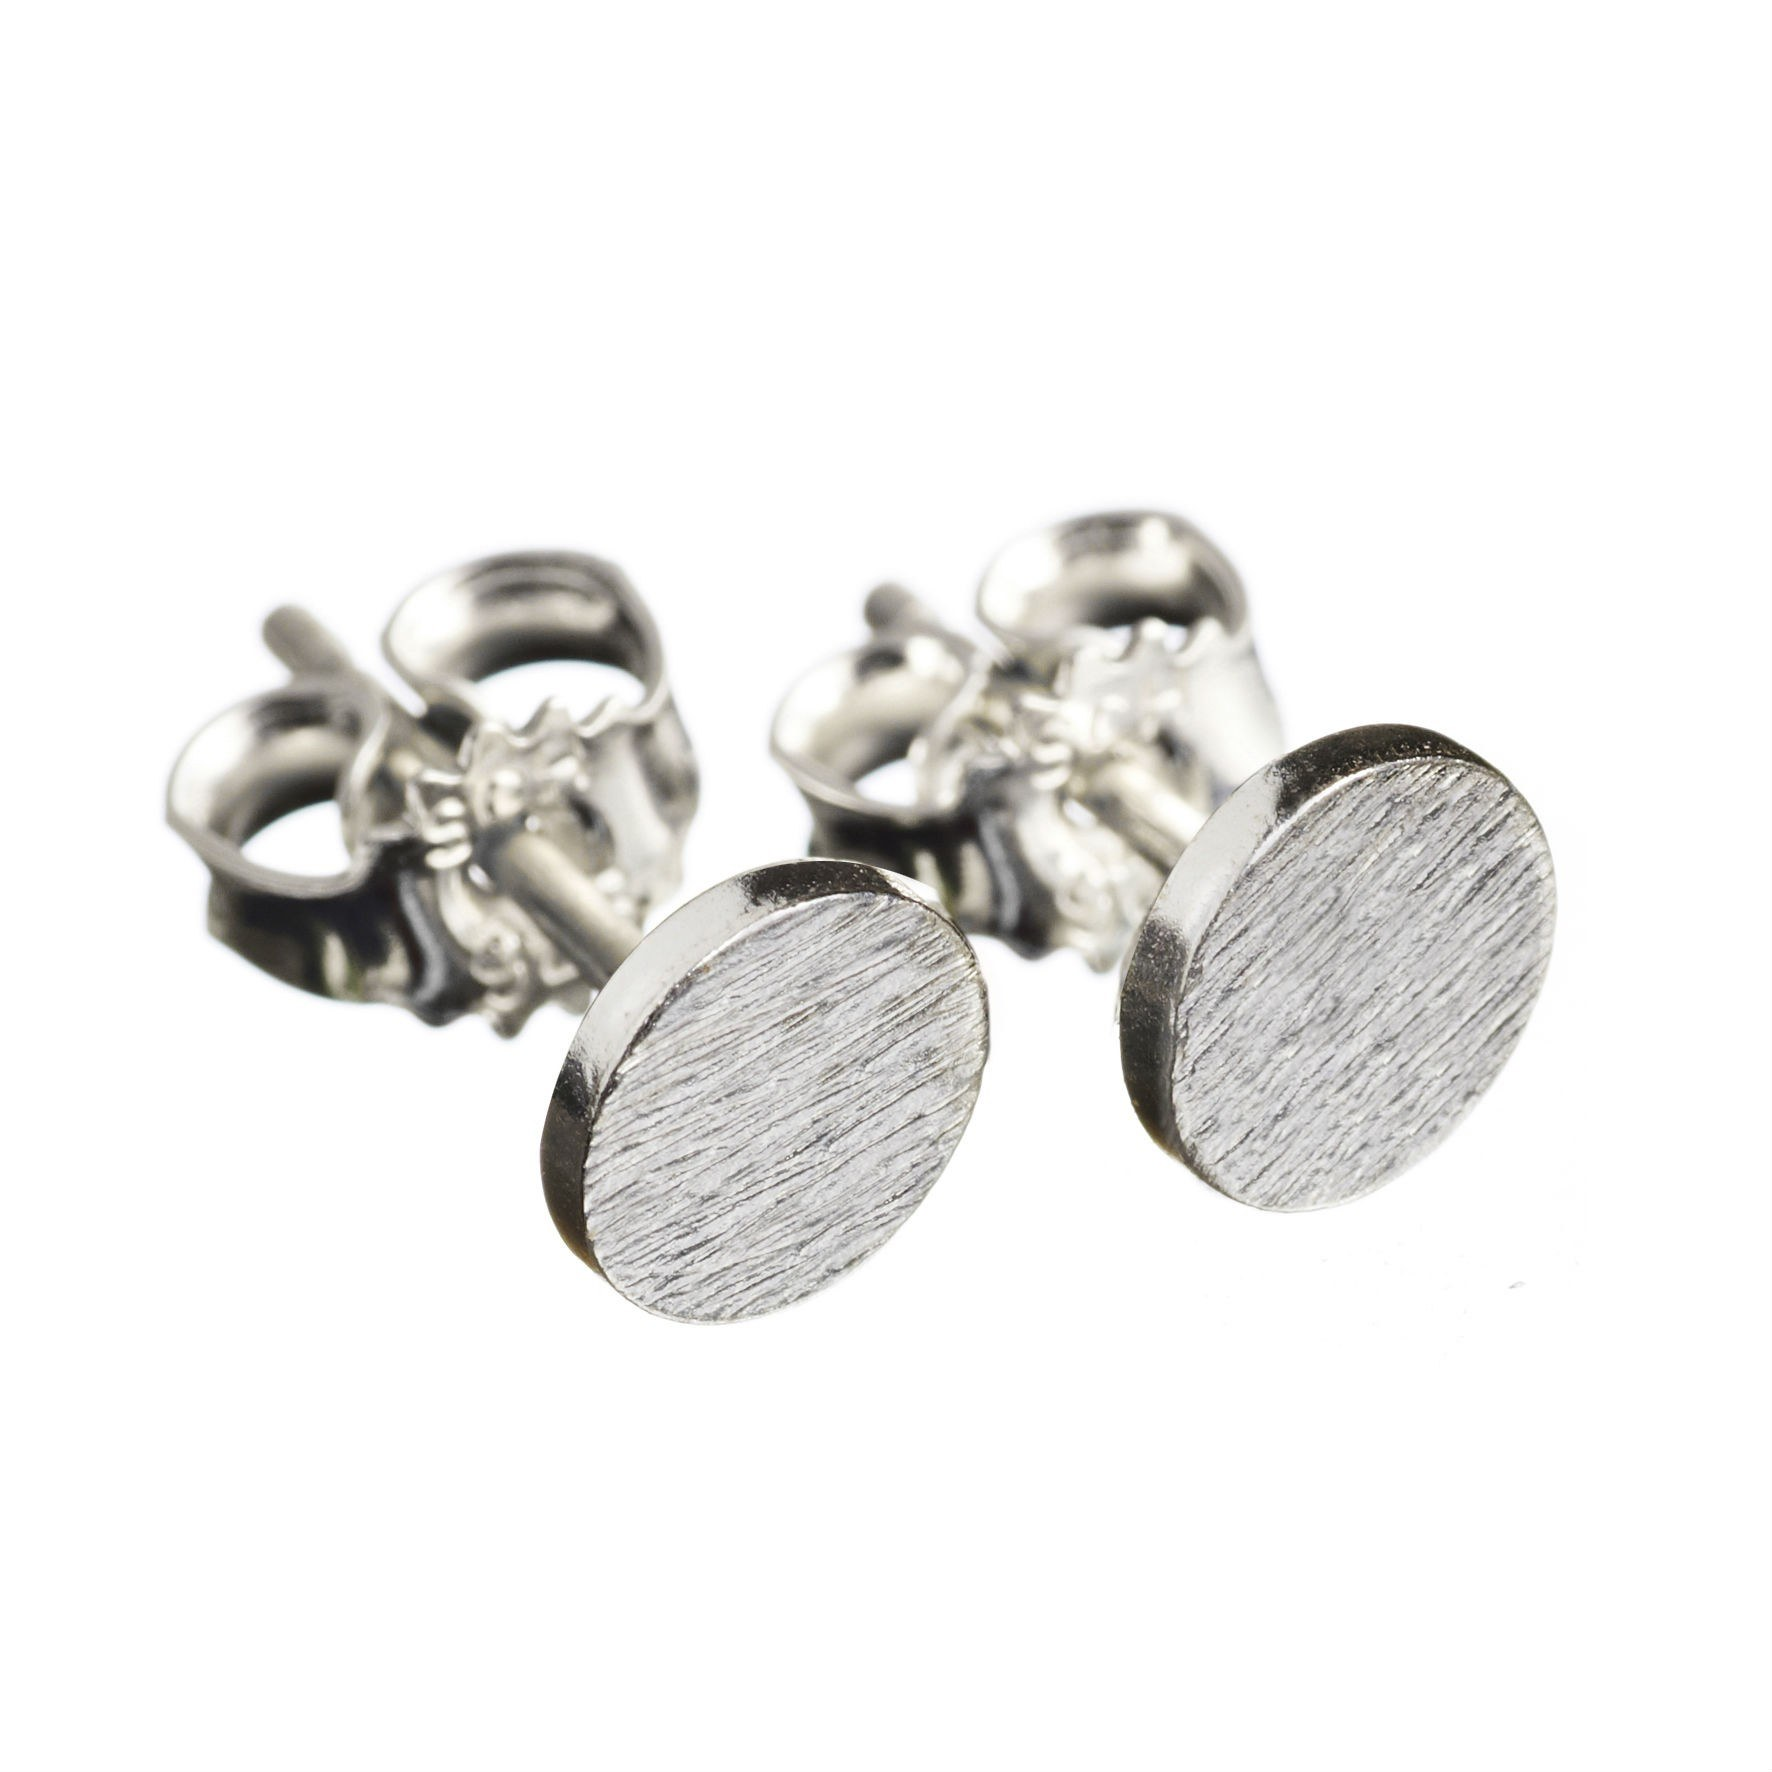 https://www.selecteddesigners.dk/media/catalog/product/c/o/co-1101-silver.jpg